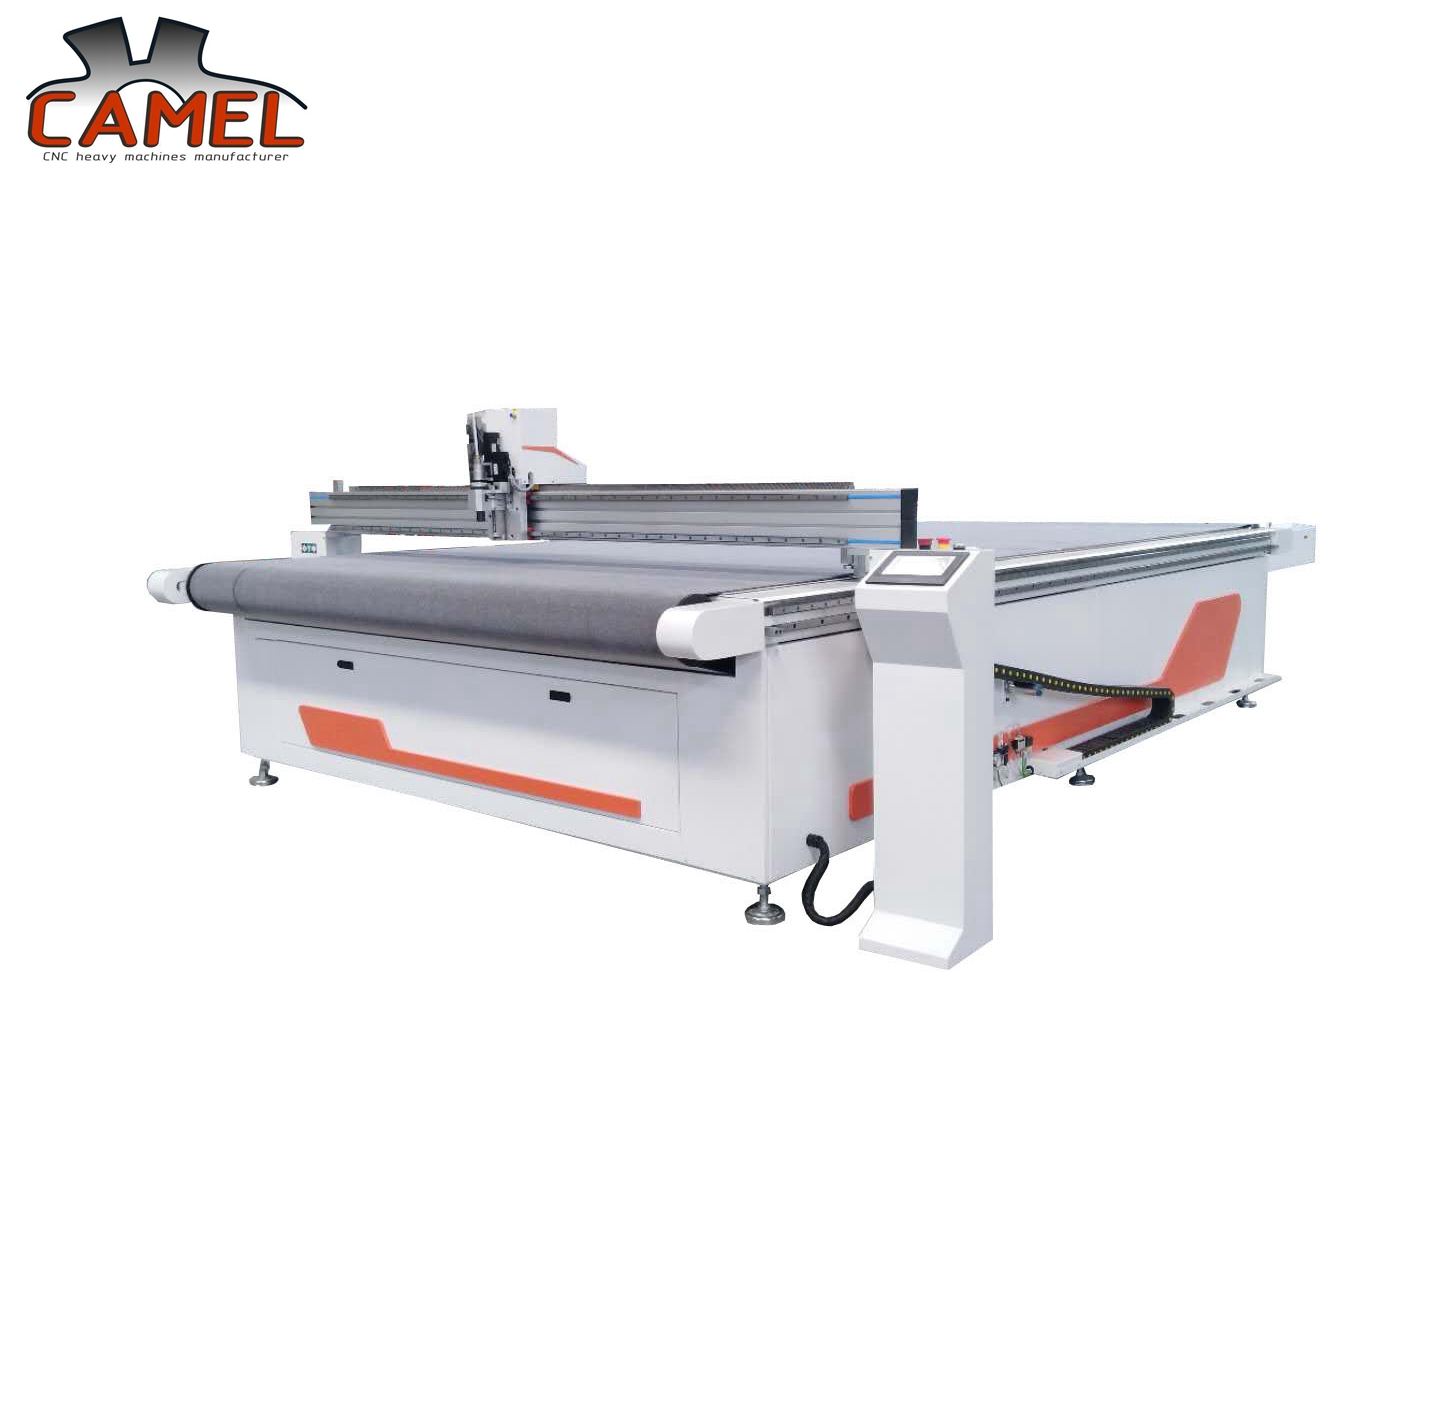 Good quality CAMEL CNC car foot mat automatic loading cnc CA-1625 cloth digital knife cutting m